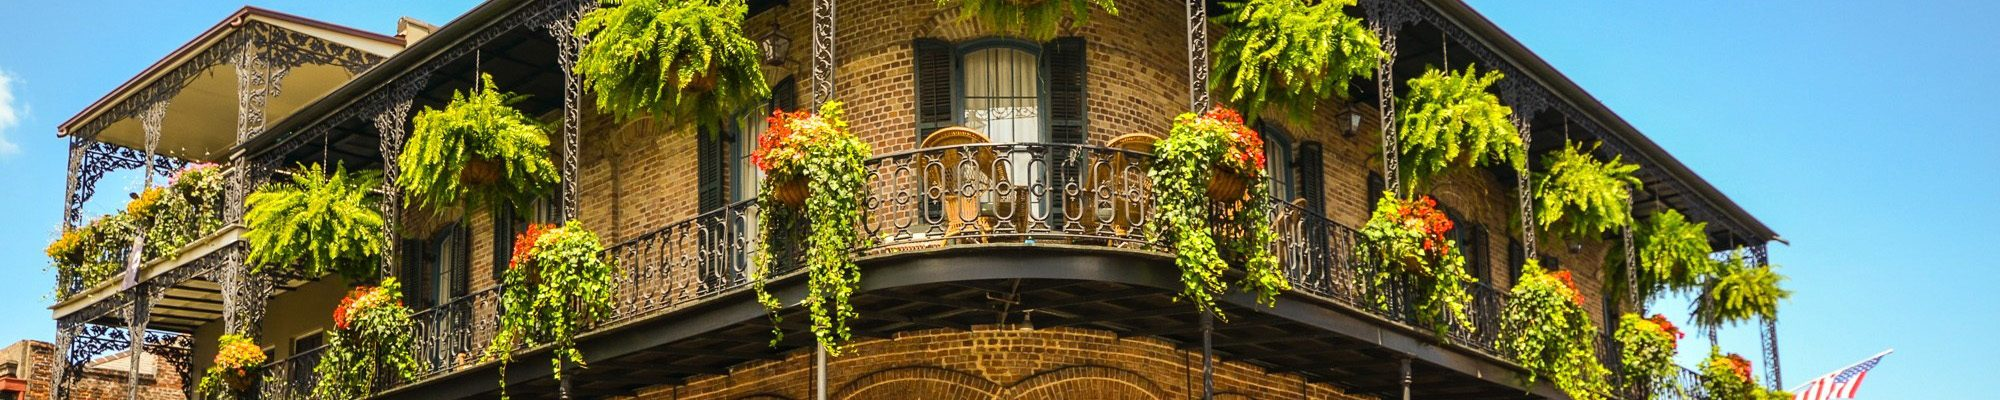 new-orleans-1630343 (1)